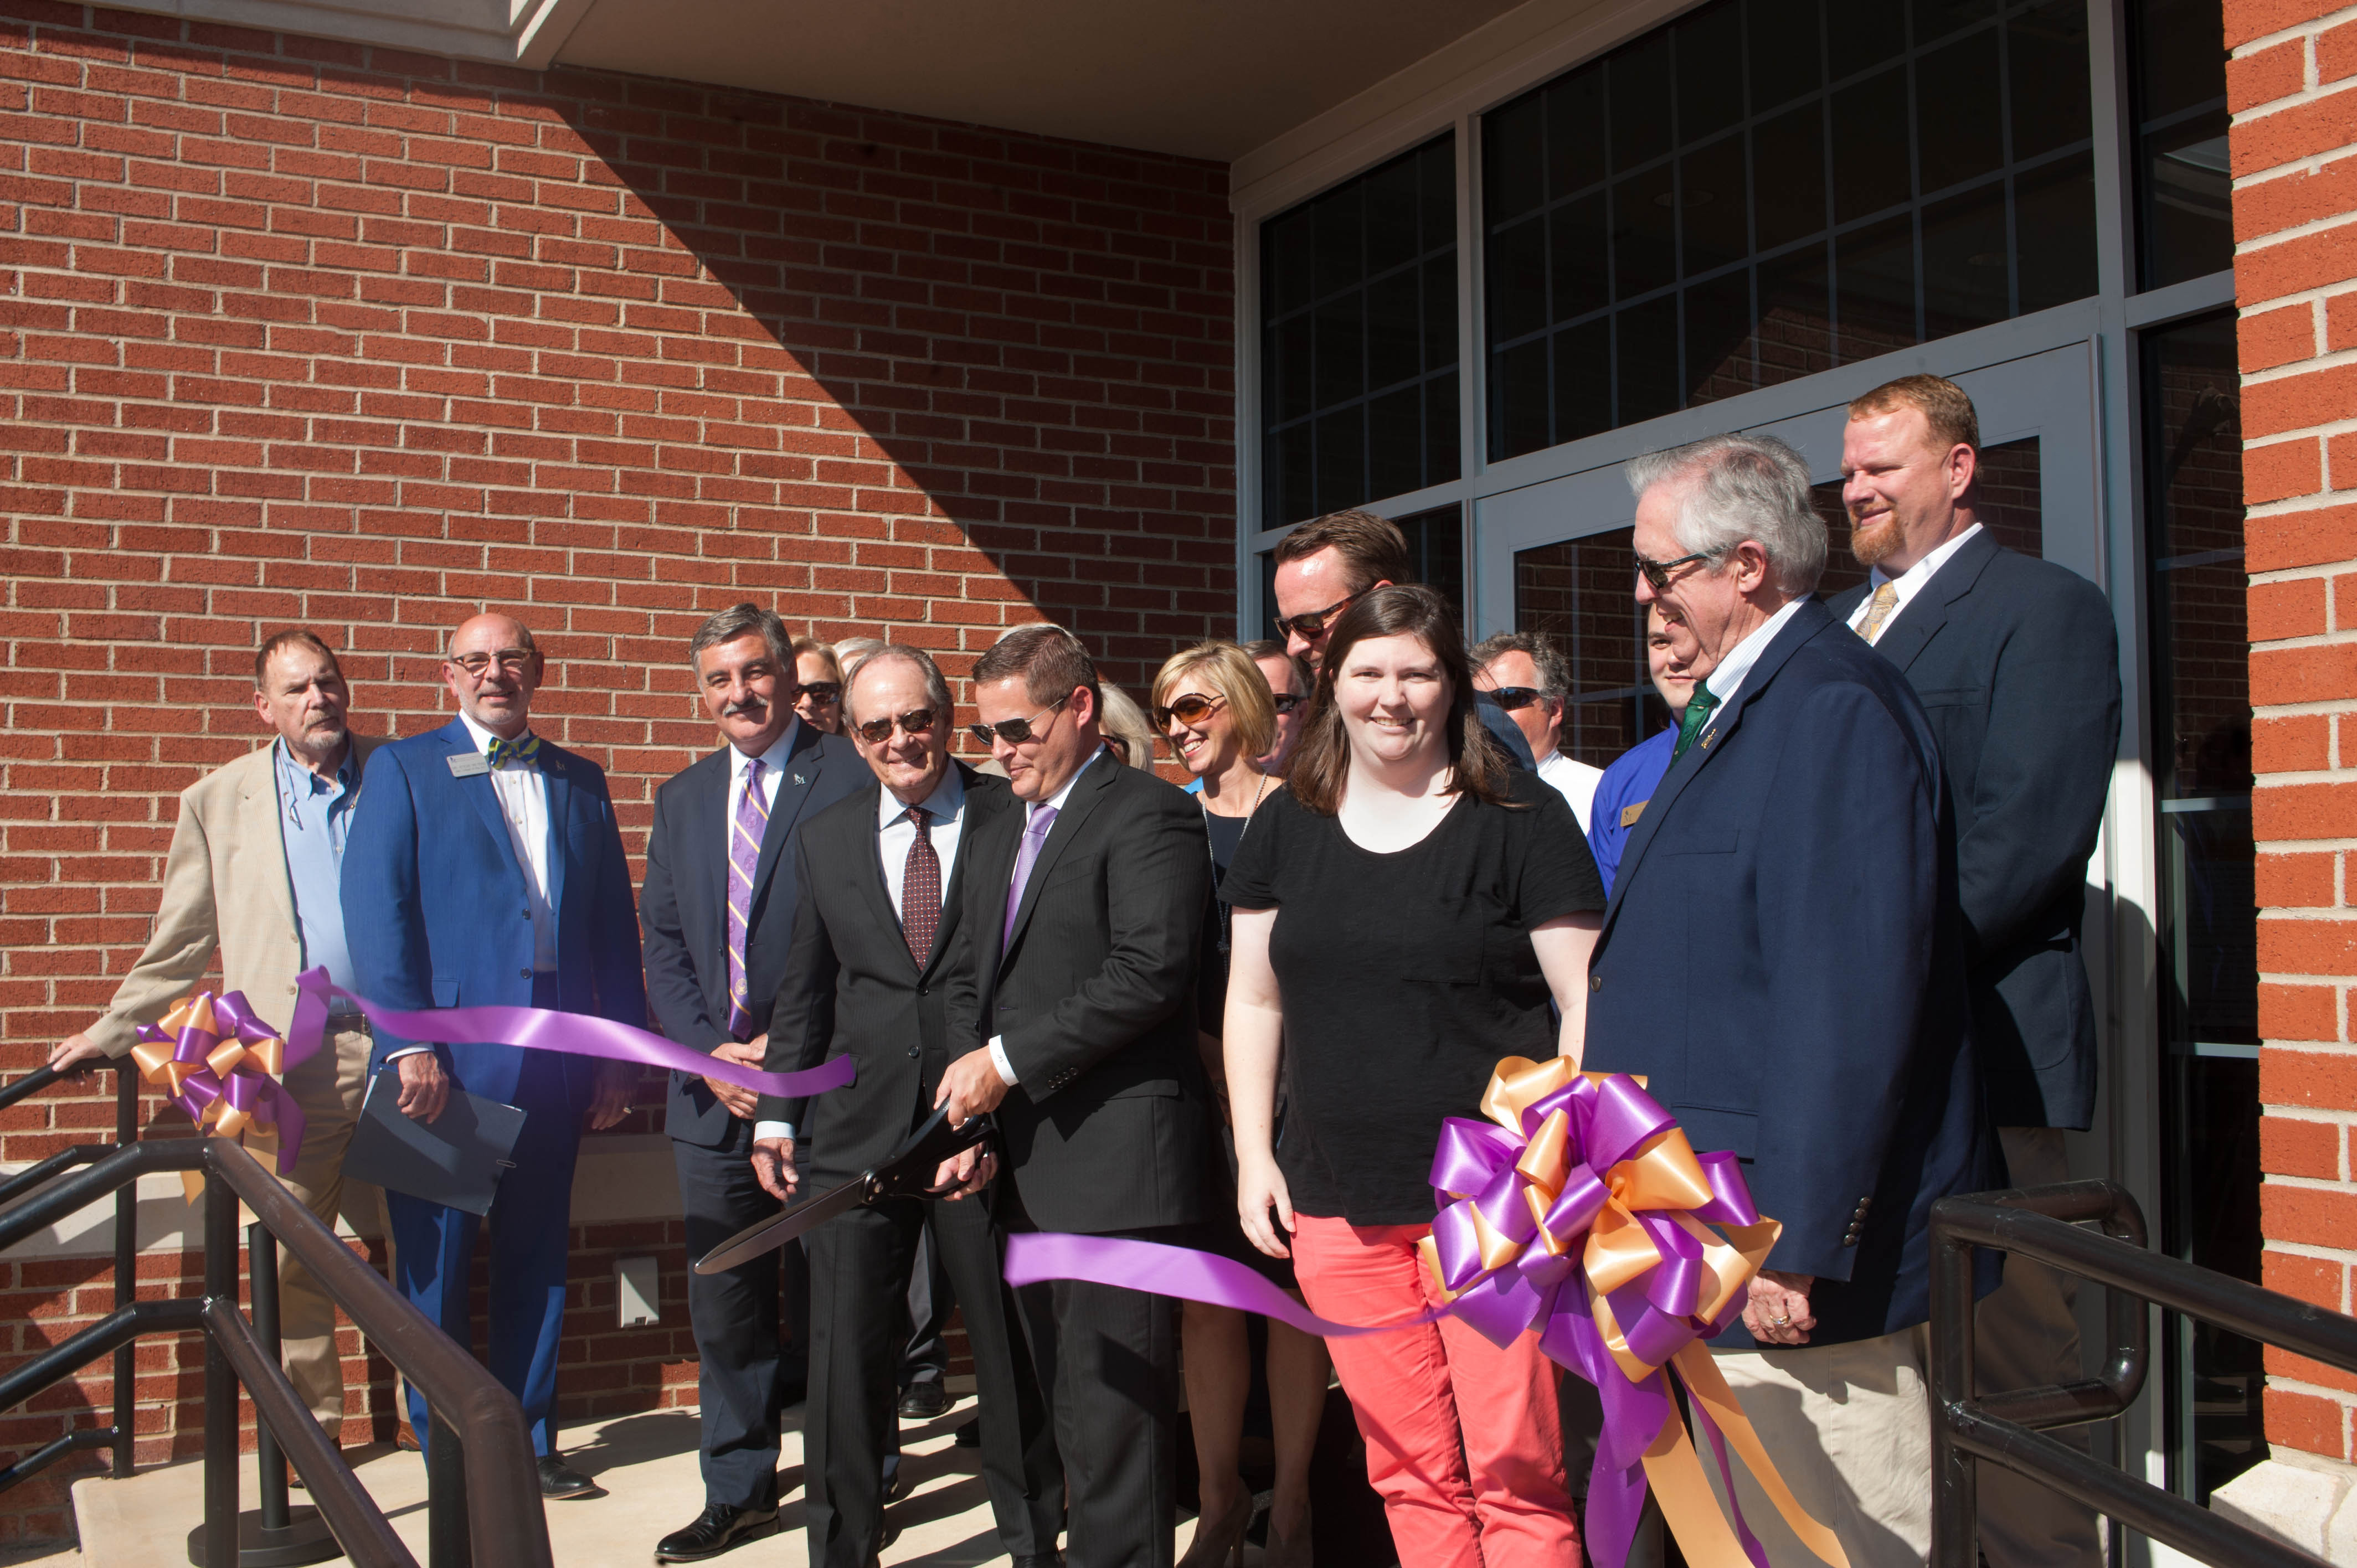 UM officials cut ribbon for Strong Hall opening